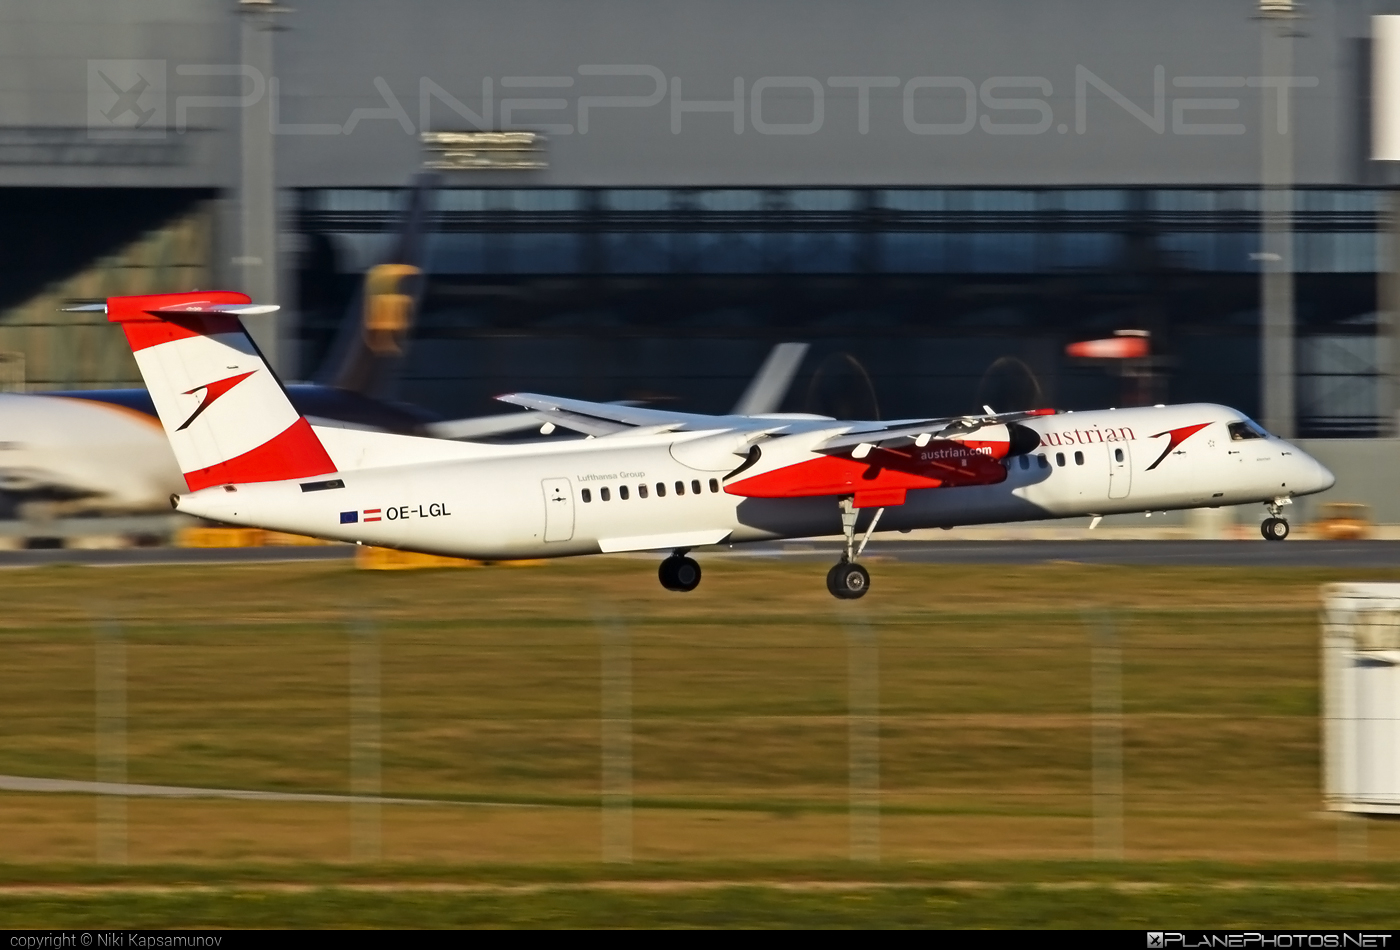 Bombardier DHC-8-Q402 Dash 8 - OE-LGL operated by Austrian Airlines #bombardier #dash8 #dhc8 #dhc8q402